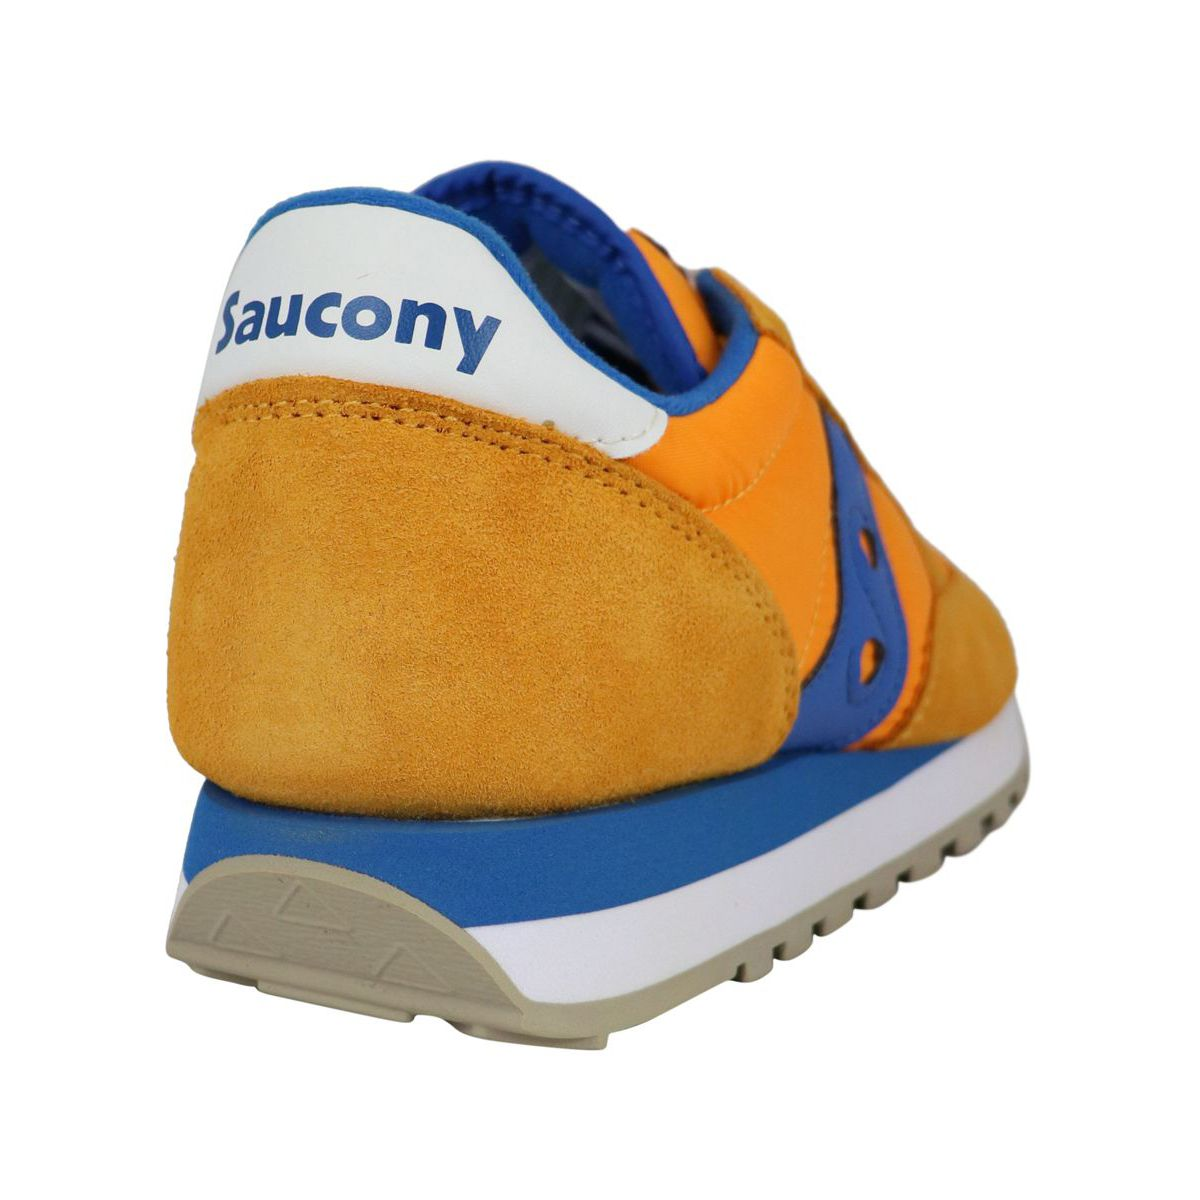 Jazz O sneakers in suede Orange / blue Saucony